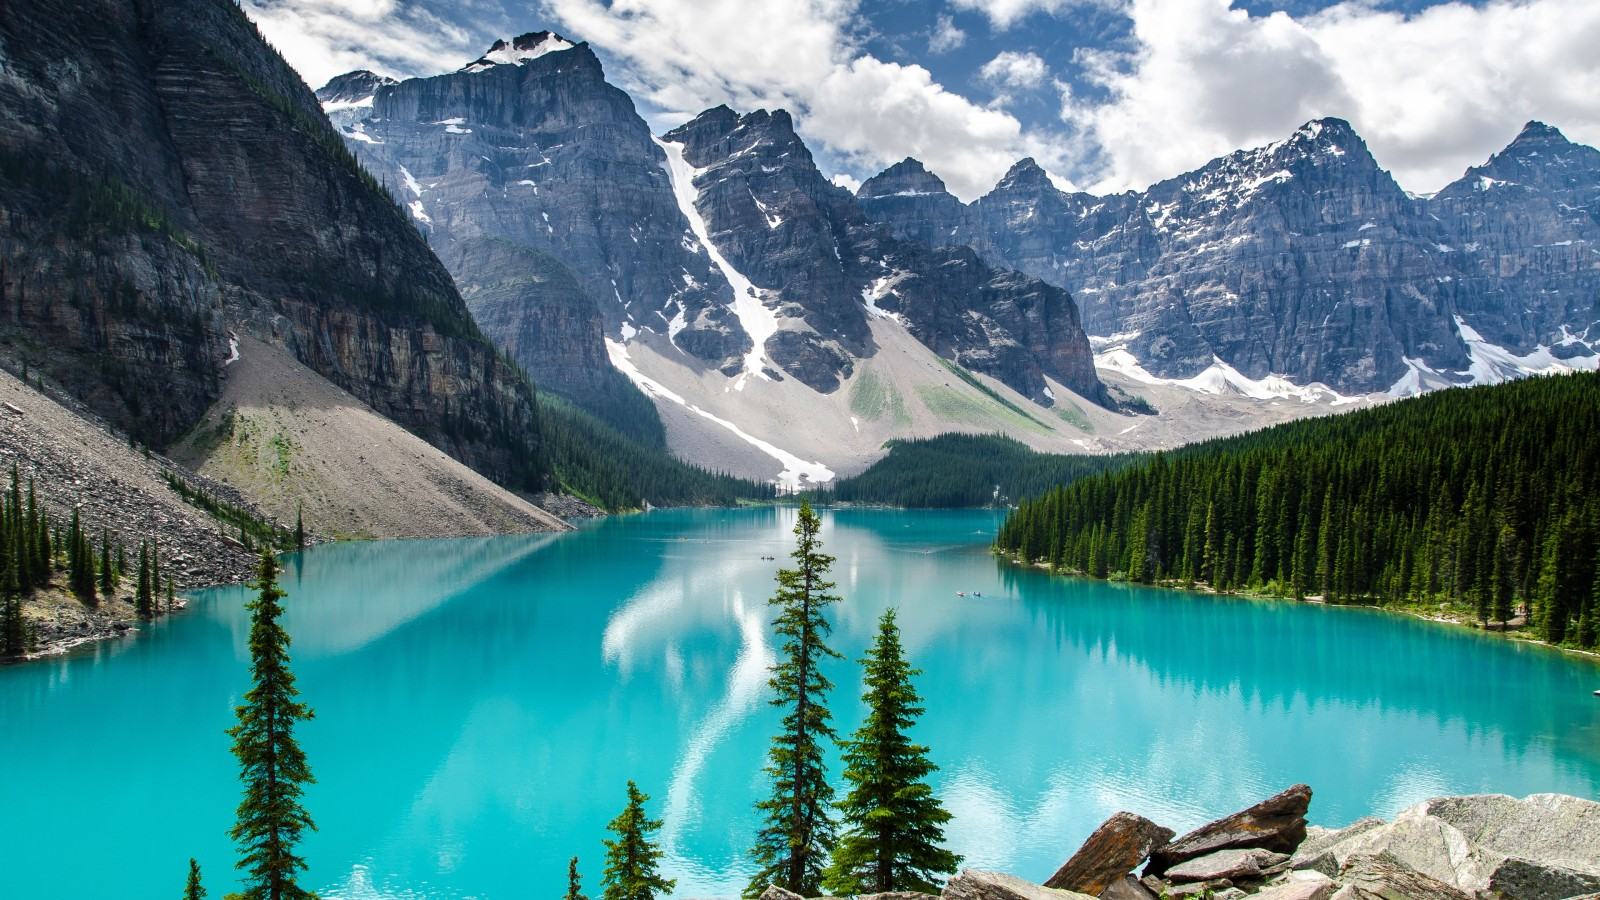 Iphone 4 Wallpapers Hd 3d Moraine Lake Banff National Park Wallpapers Hd